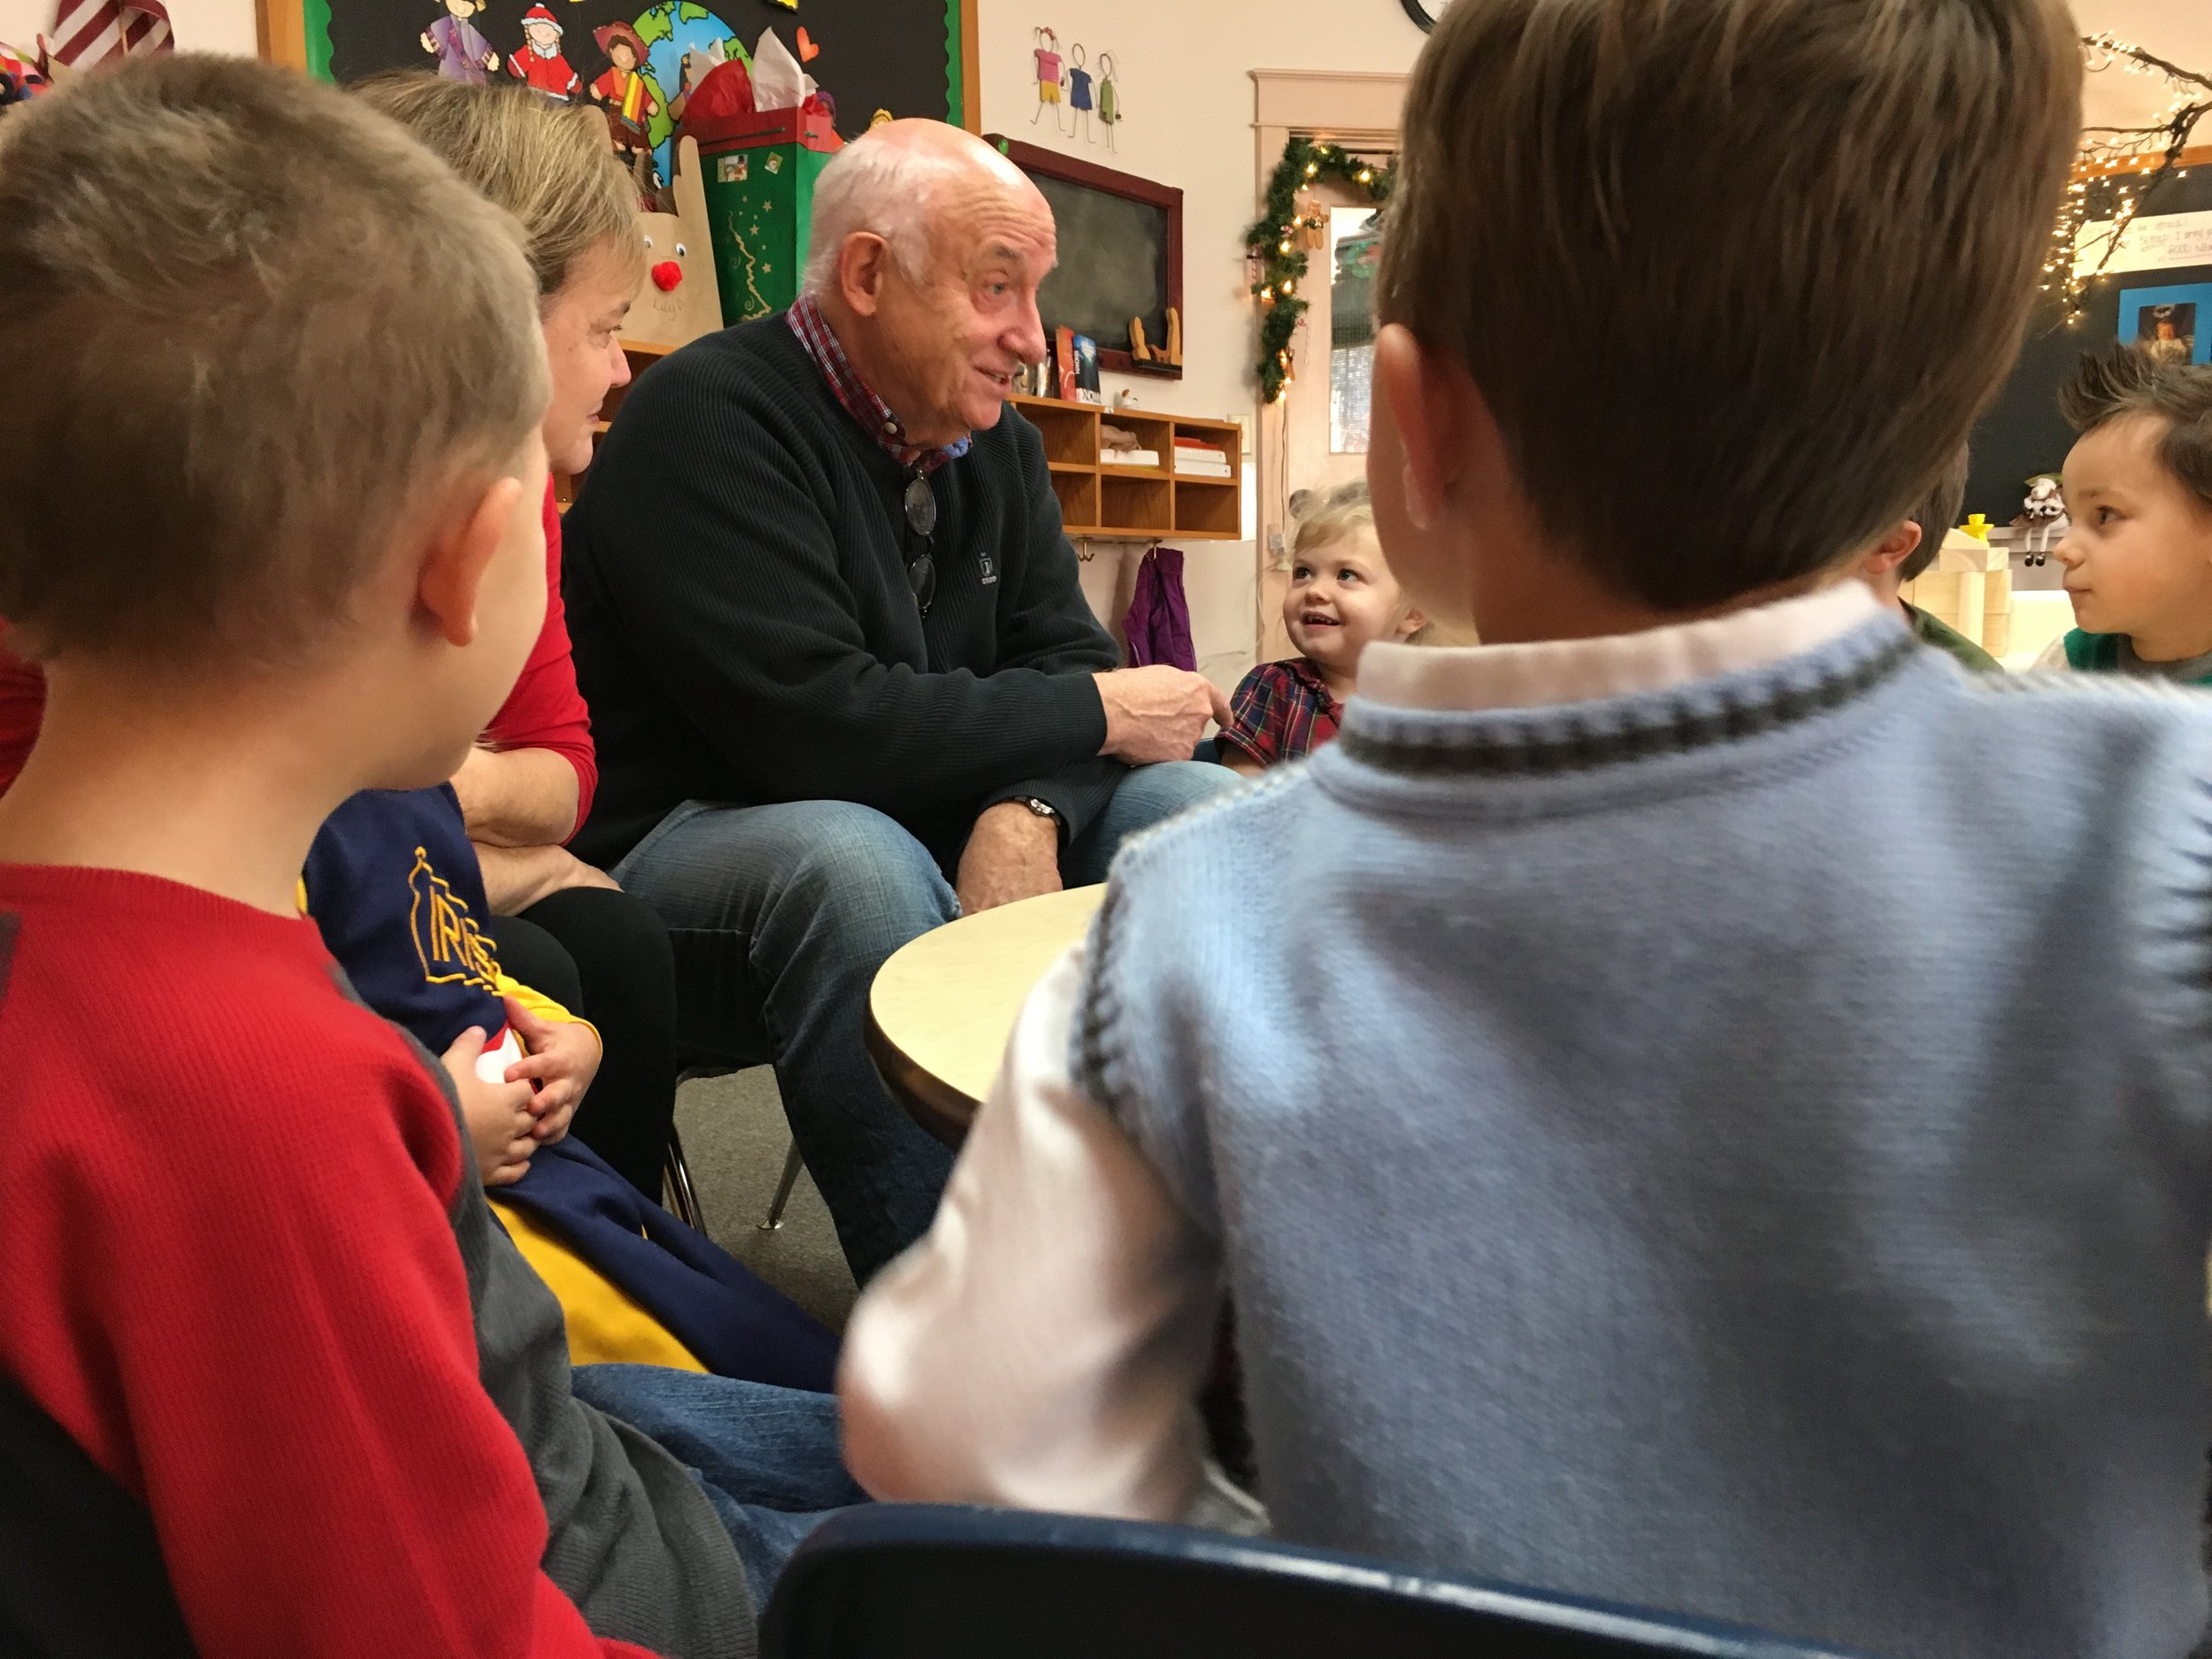 Dick Foth with preschool friends